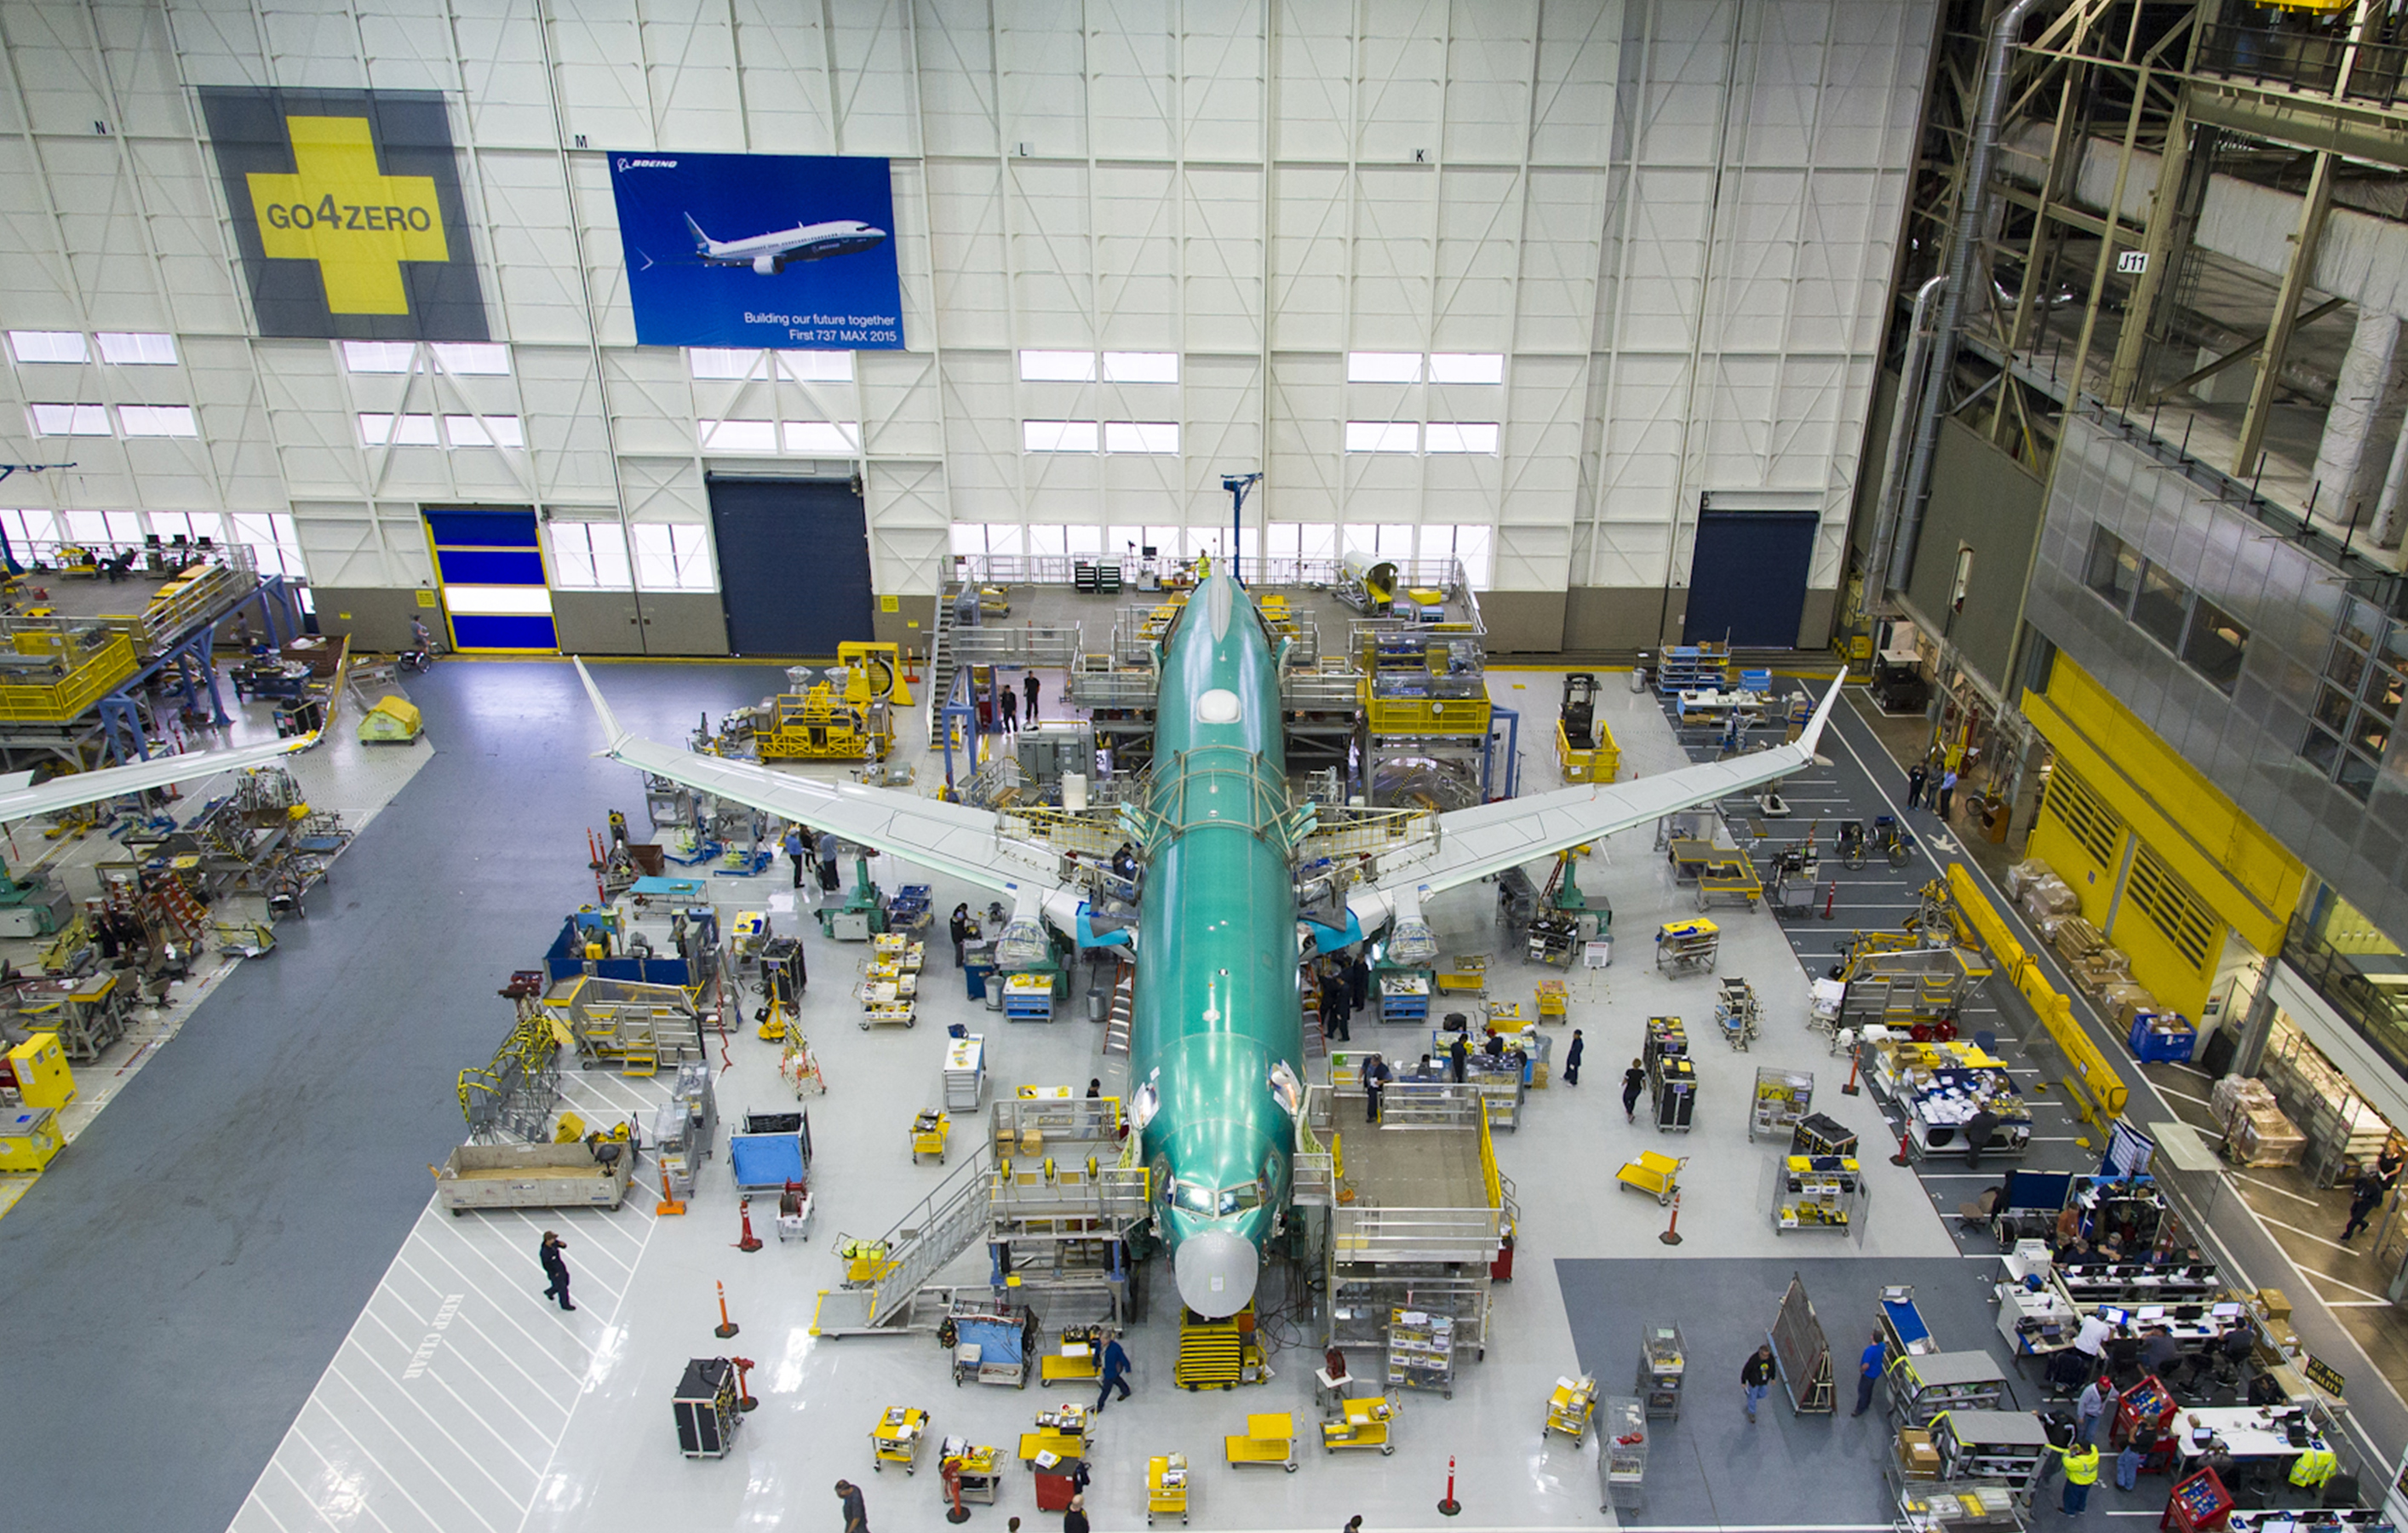 Boeing 737 MAX: What Happened, And What Now?